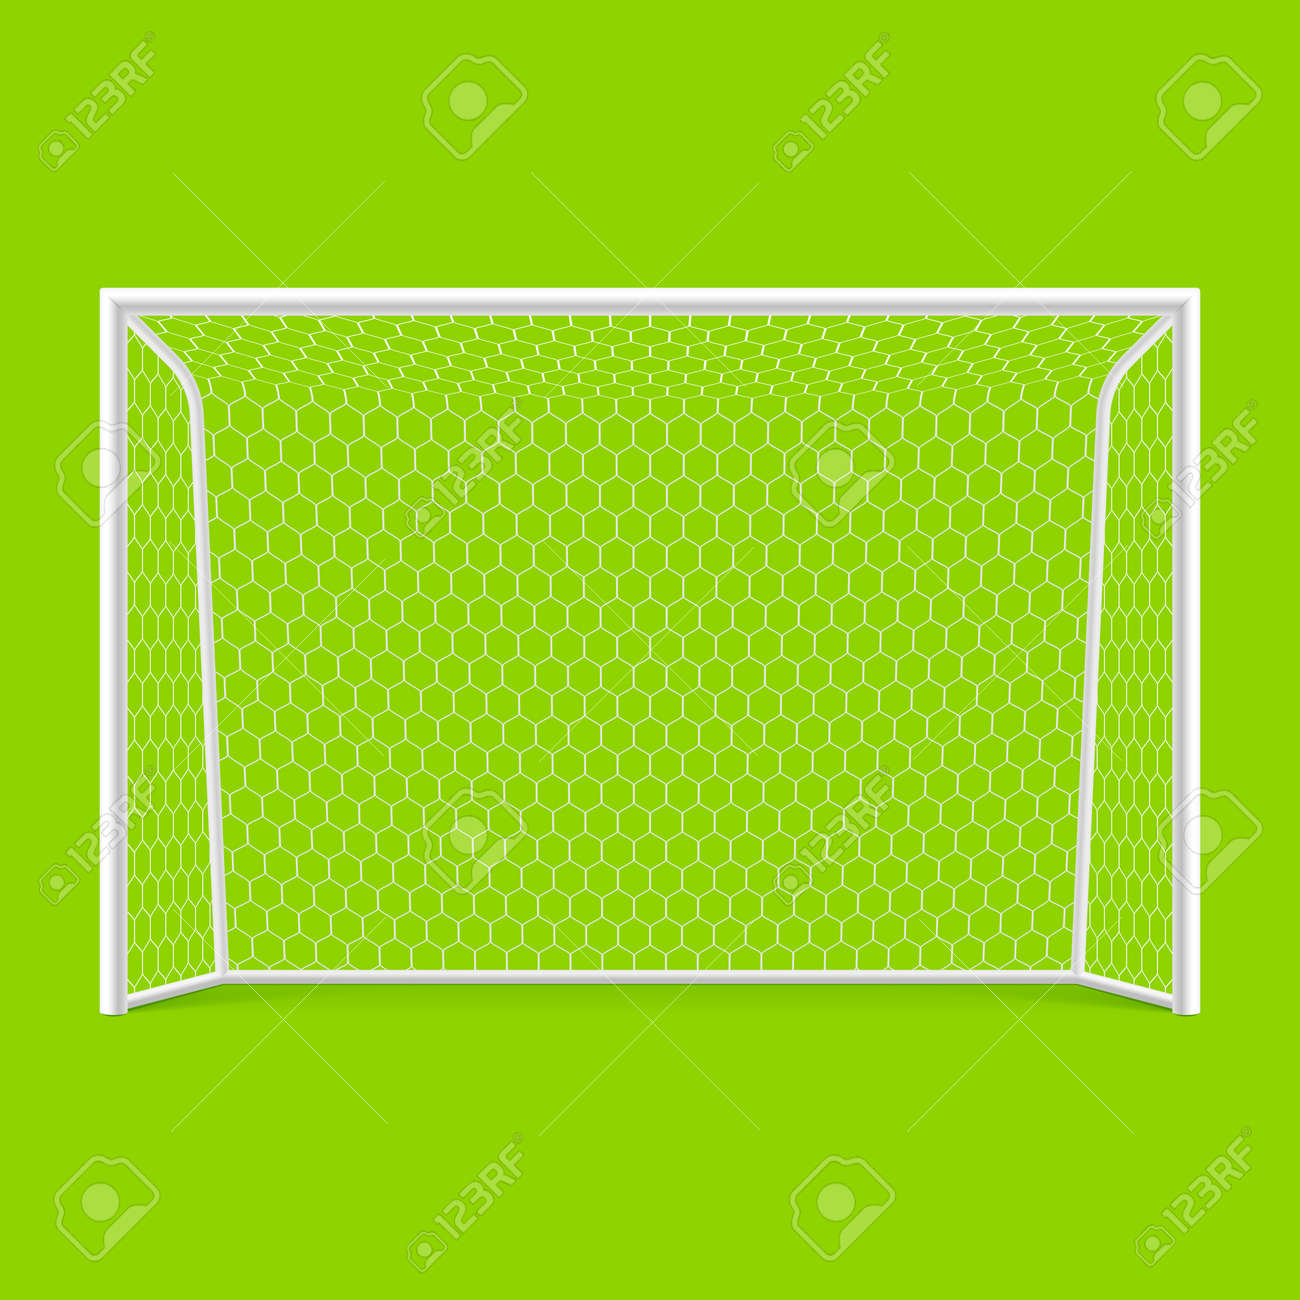 Soccer goal front view Stock Vector - 13488125